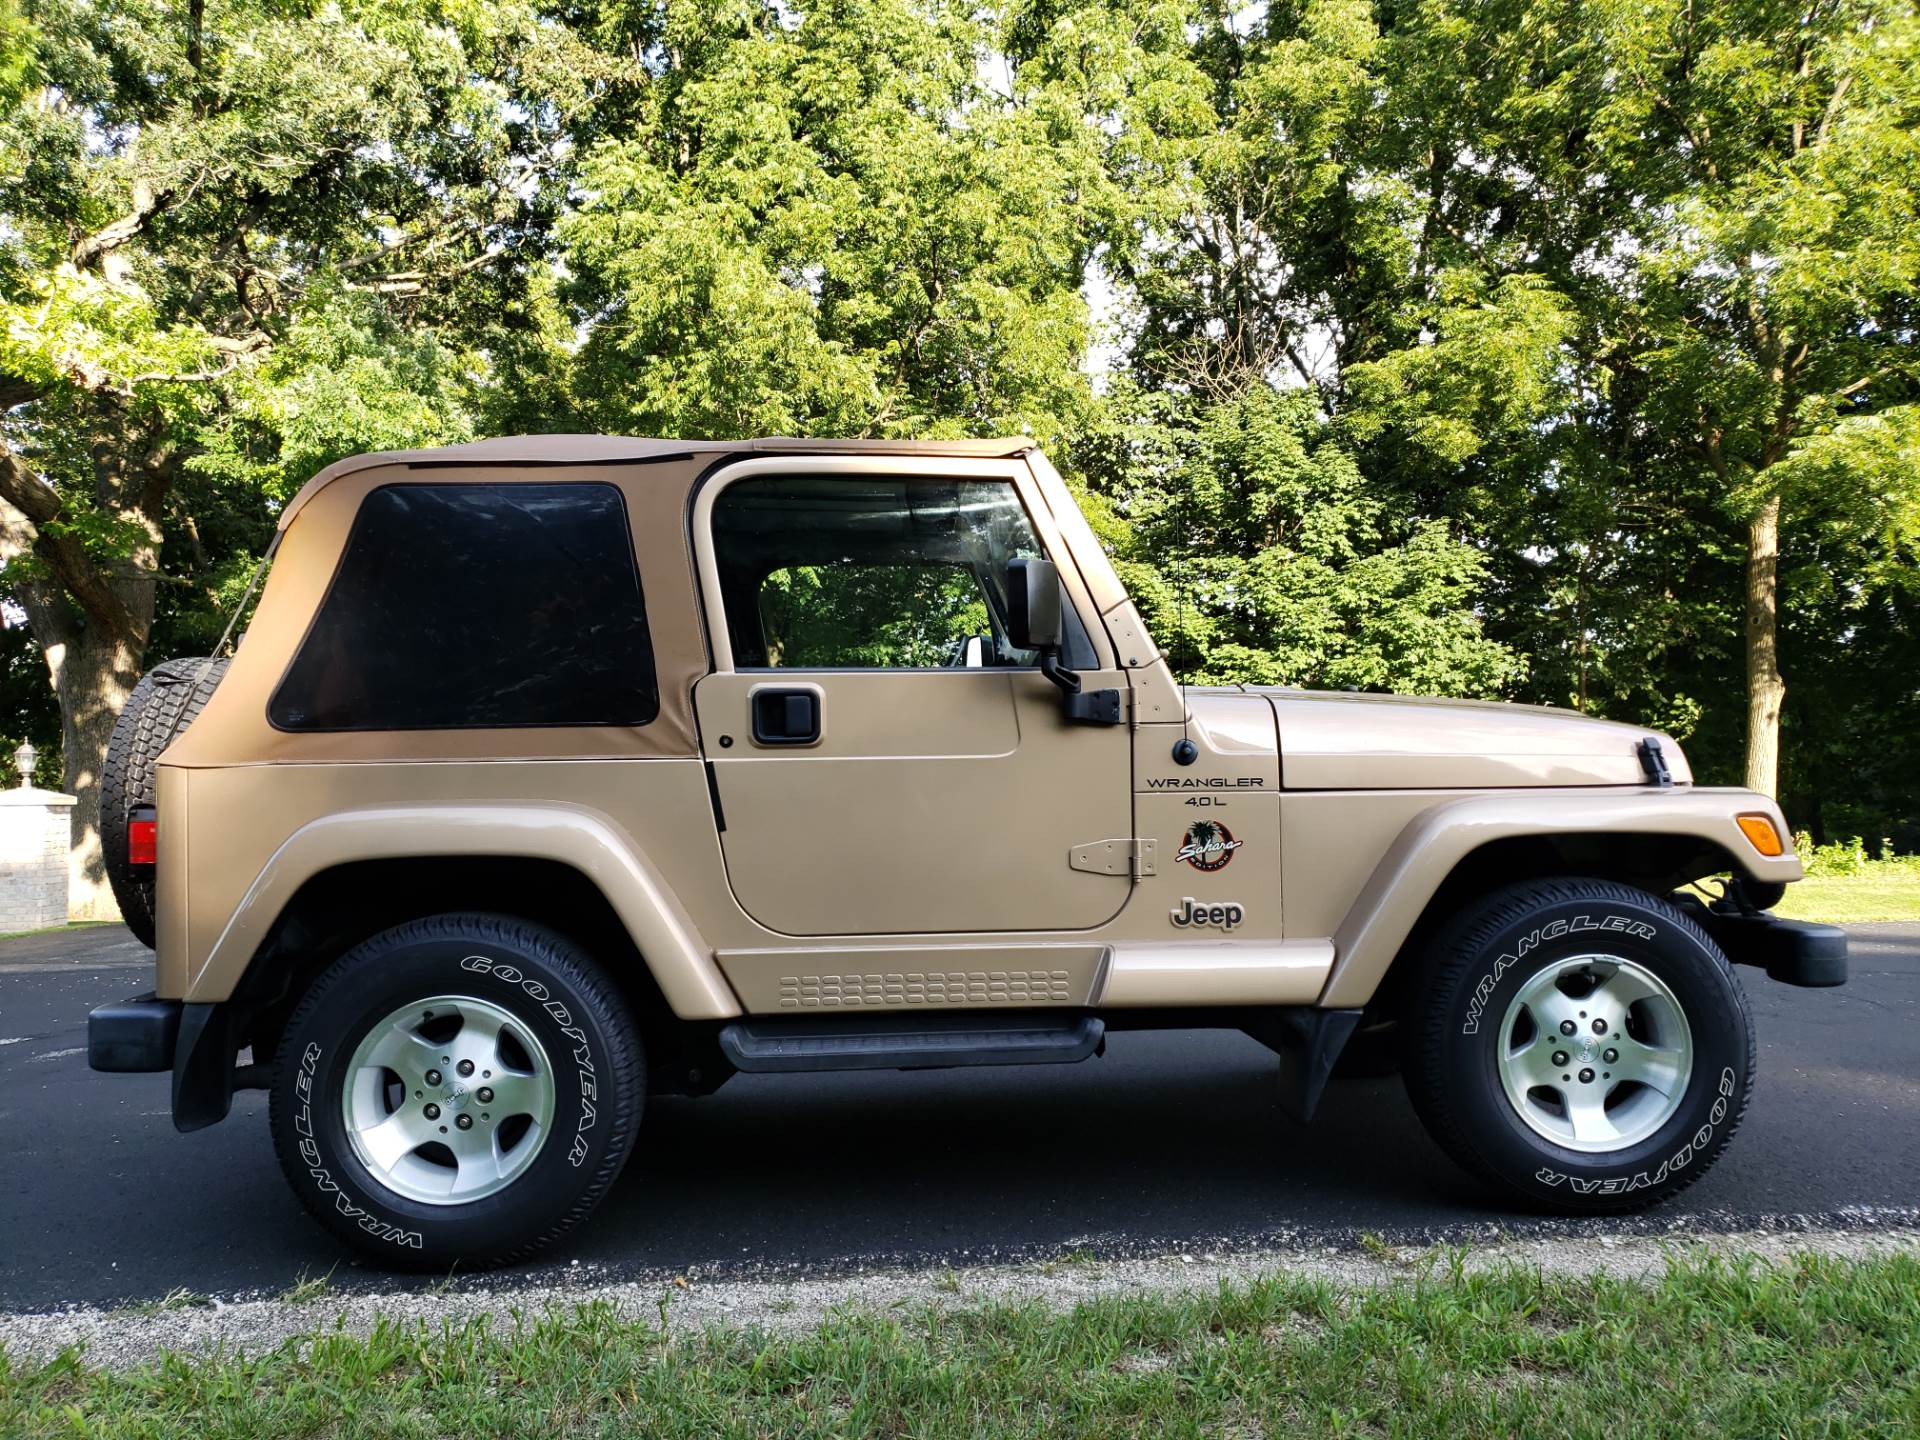 1999 Jeep Wrangler Sahara 2dr 4WD SUV in Big Bend, Wisconsin - Photo 110